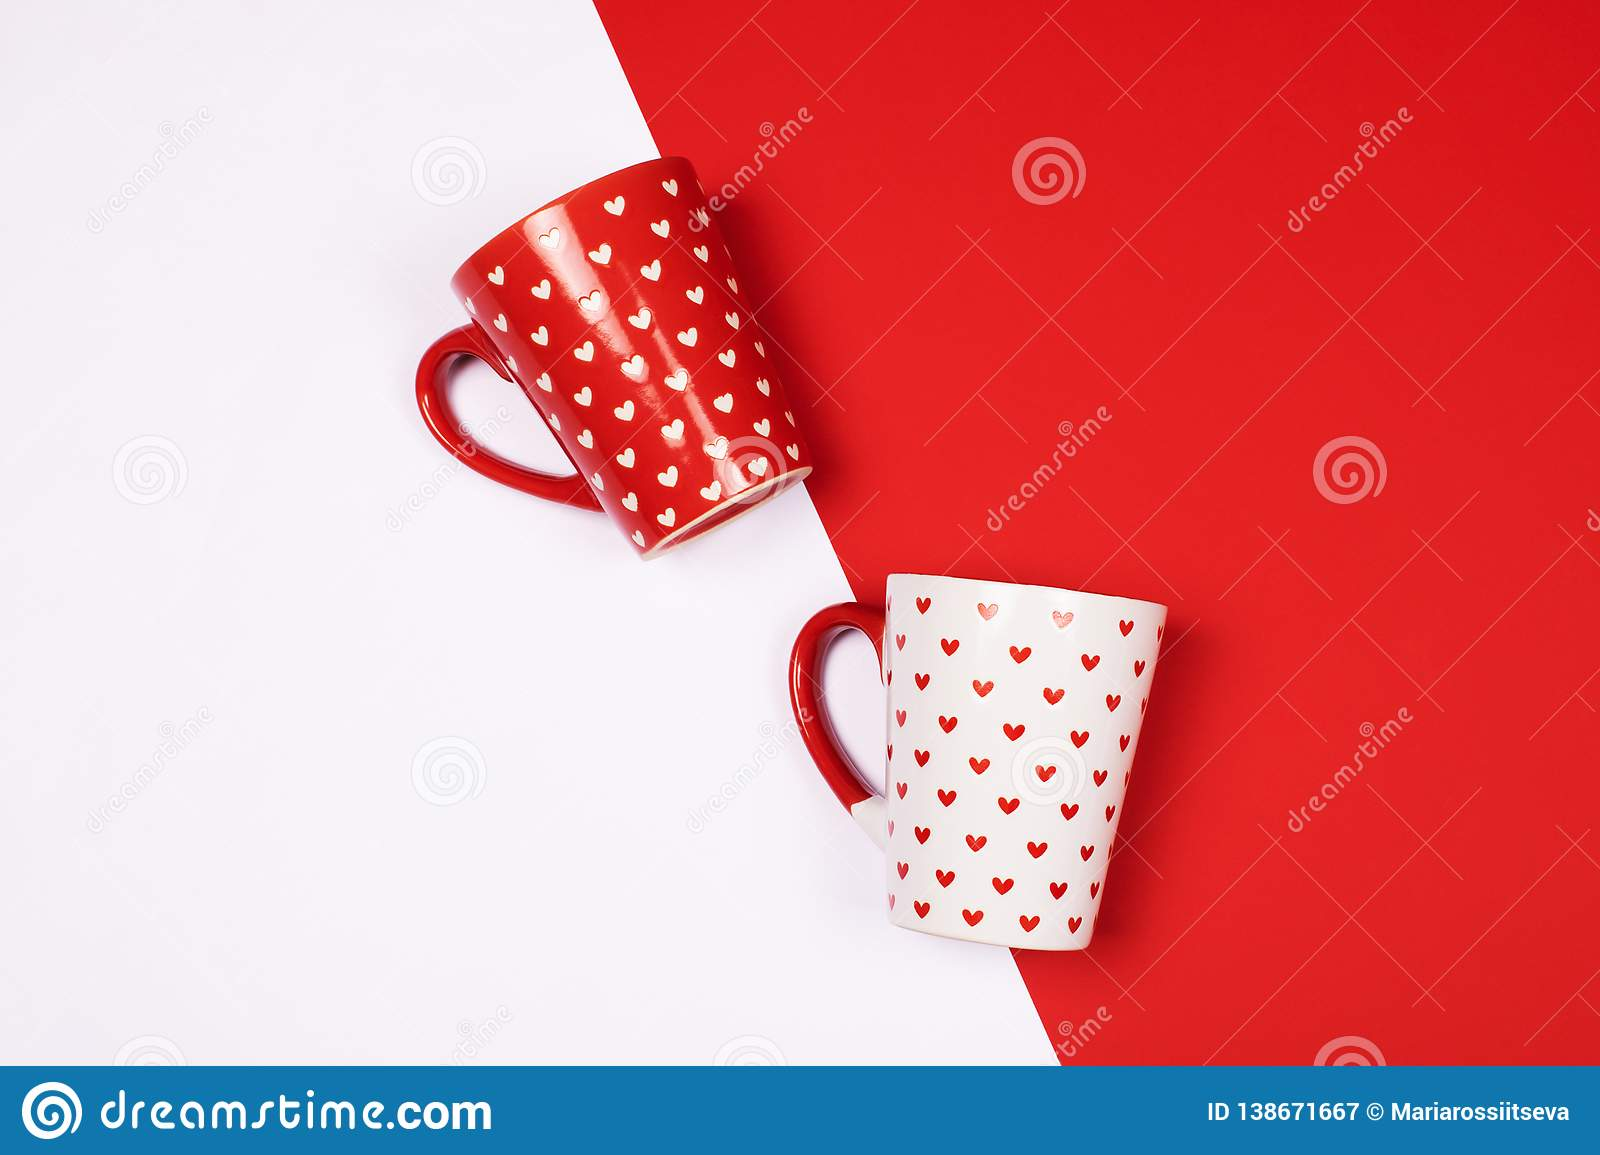 Mugs with heart-shaped pattern on red and white